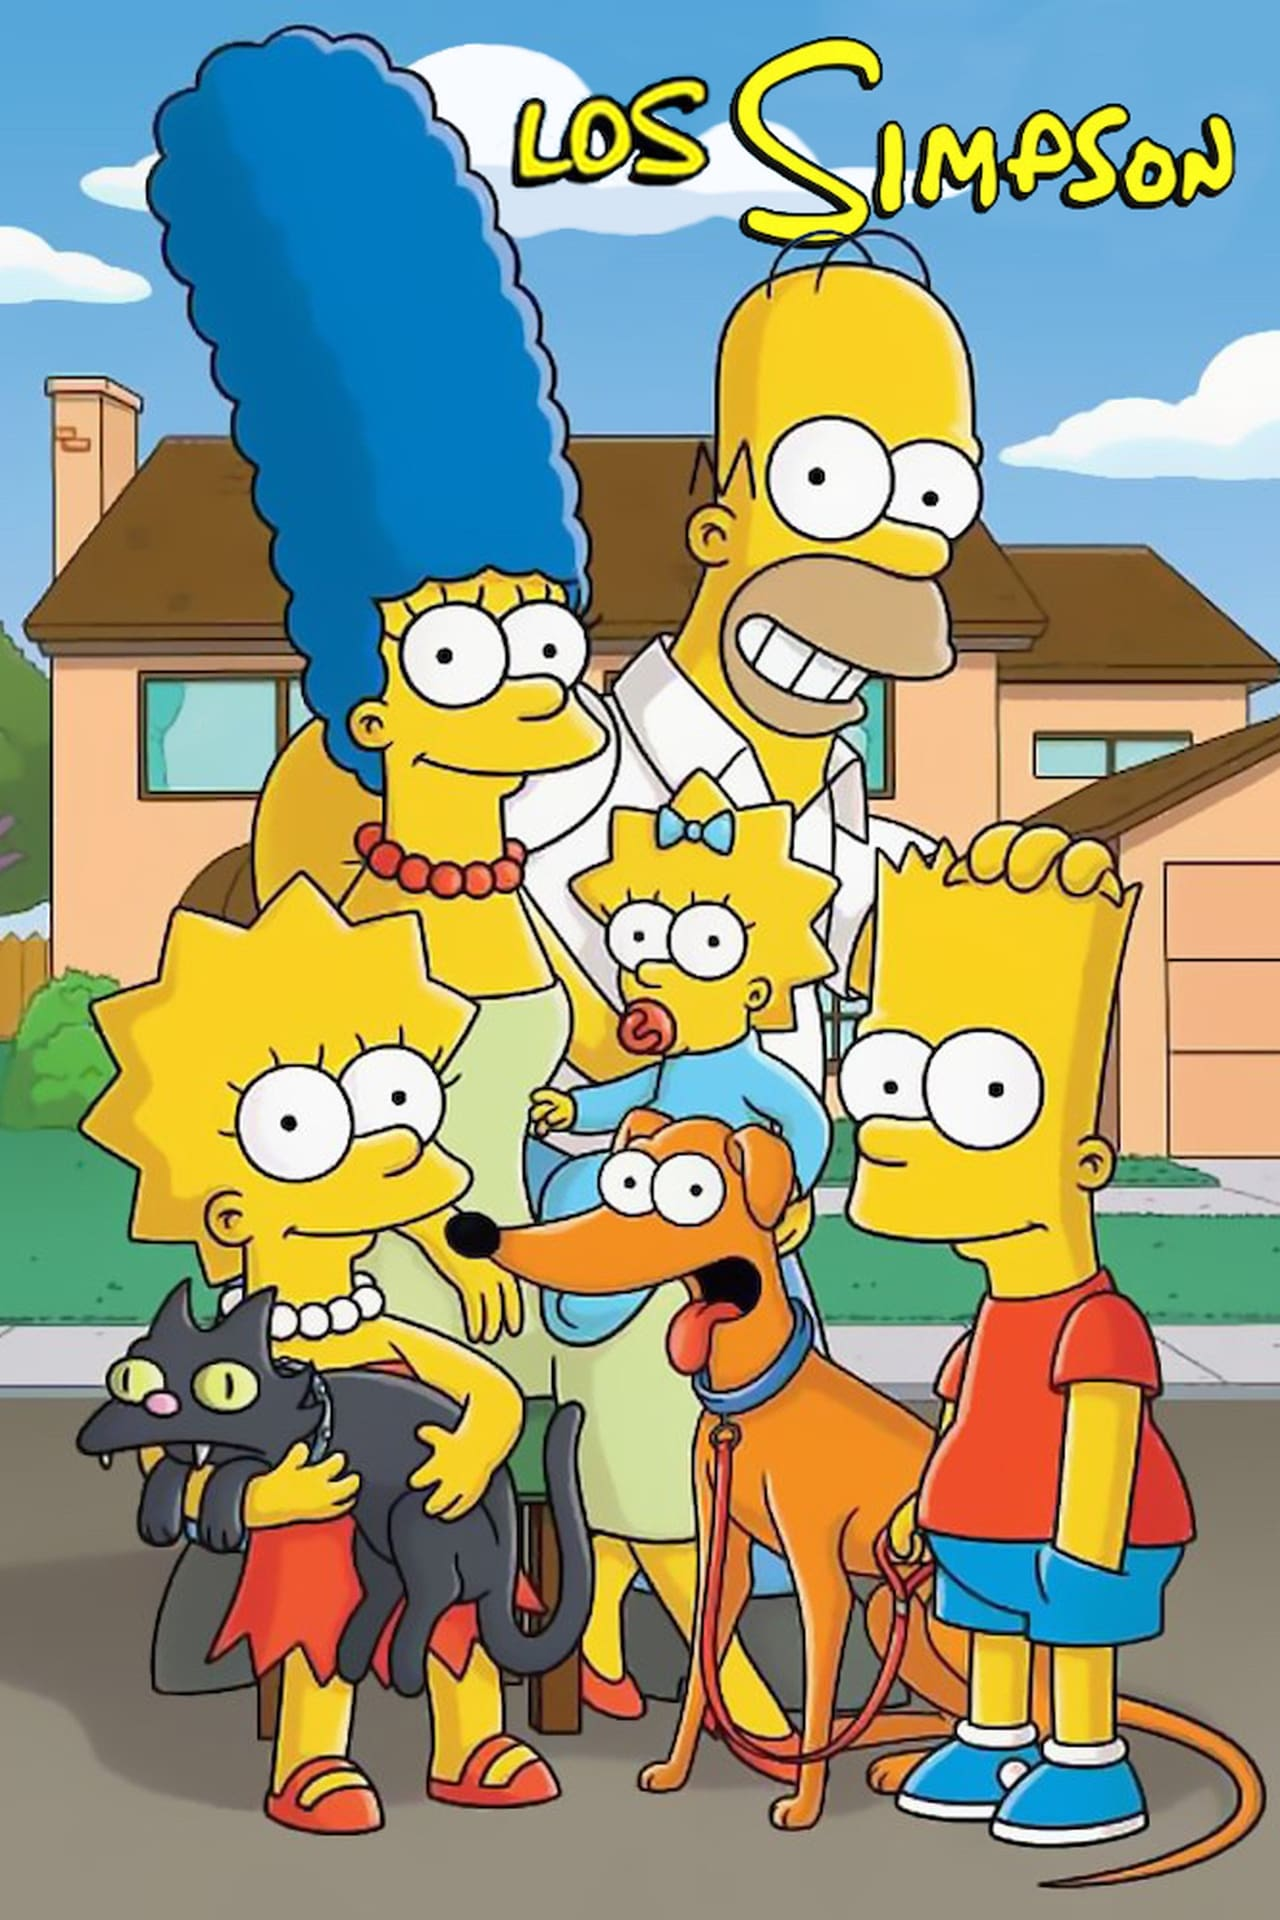 Los Simpson - Season 29 Episode 19 : Despedido